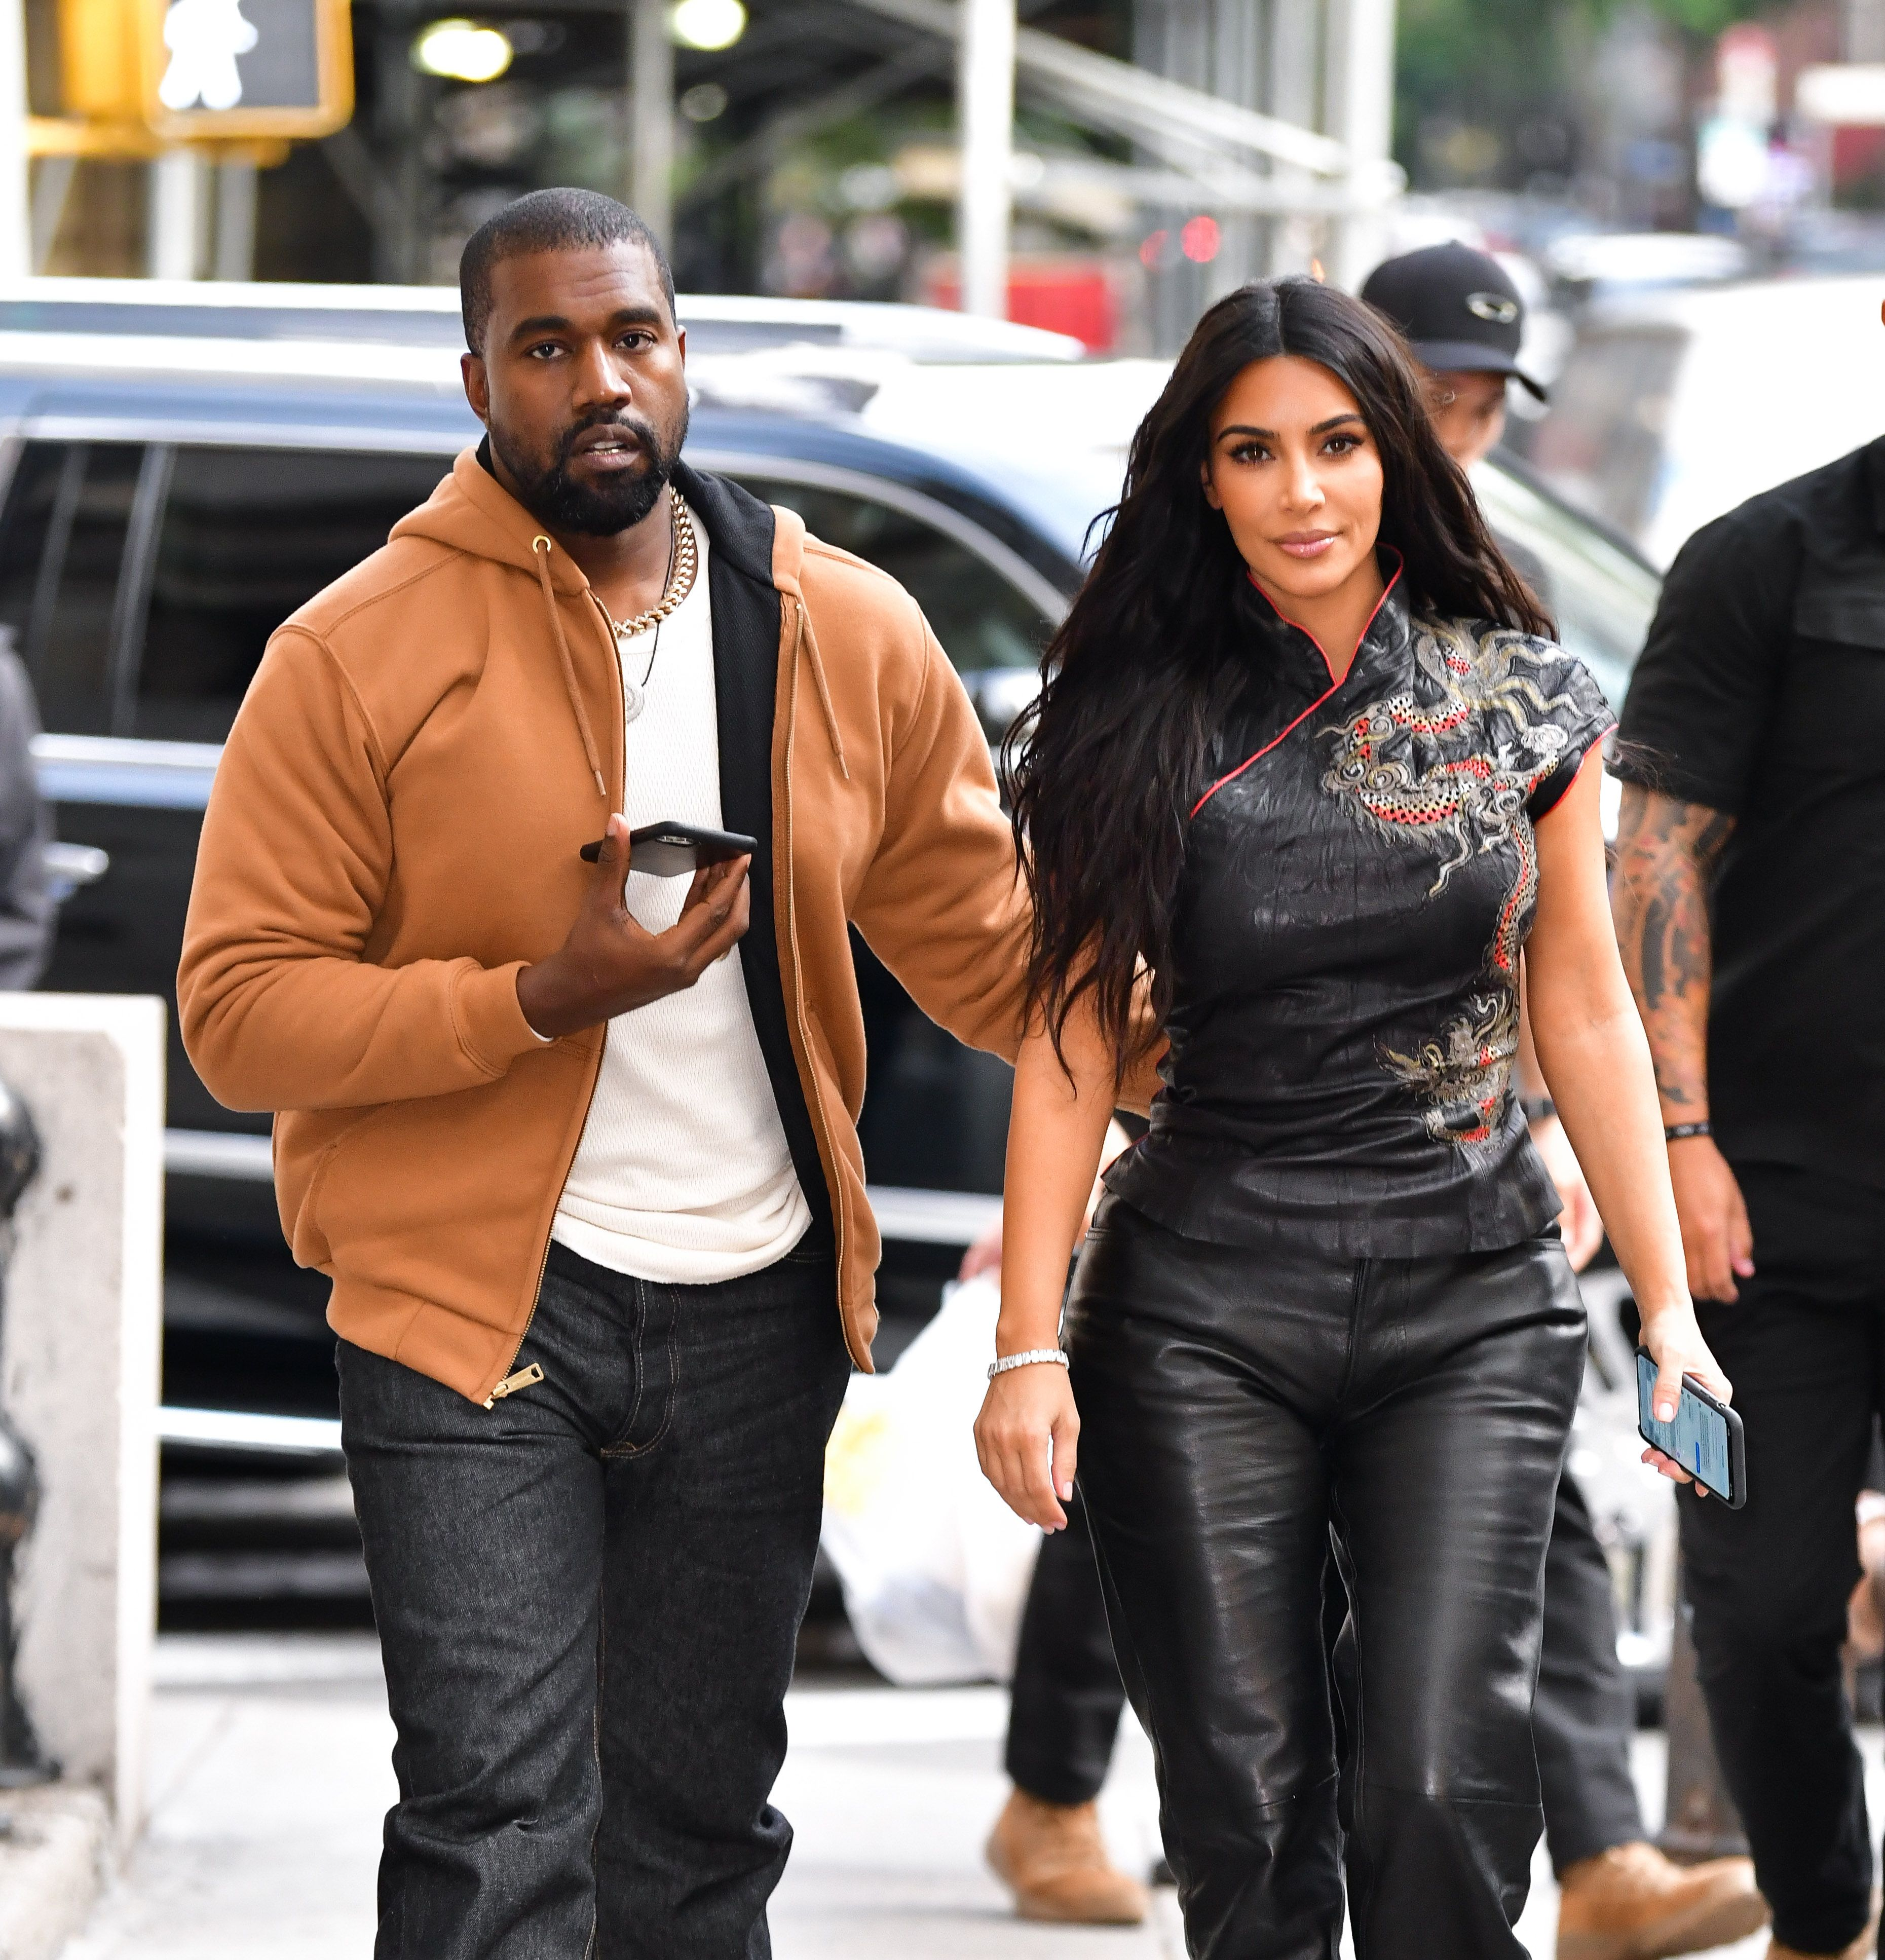 Kanye West and Kim Kardashian West visit Dover Street Market on October 25, 2019 in New York City. | Source: Getty Images